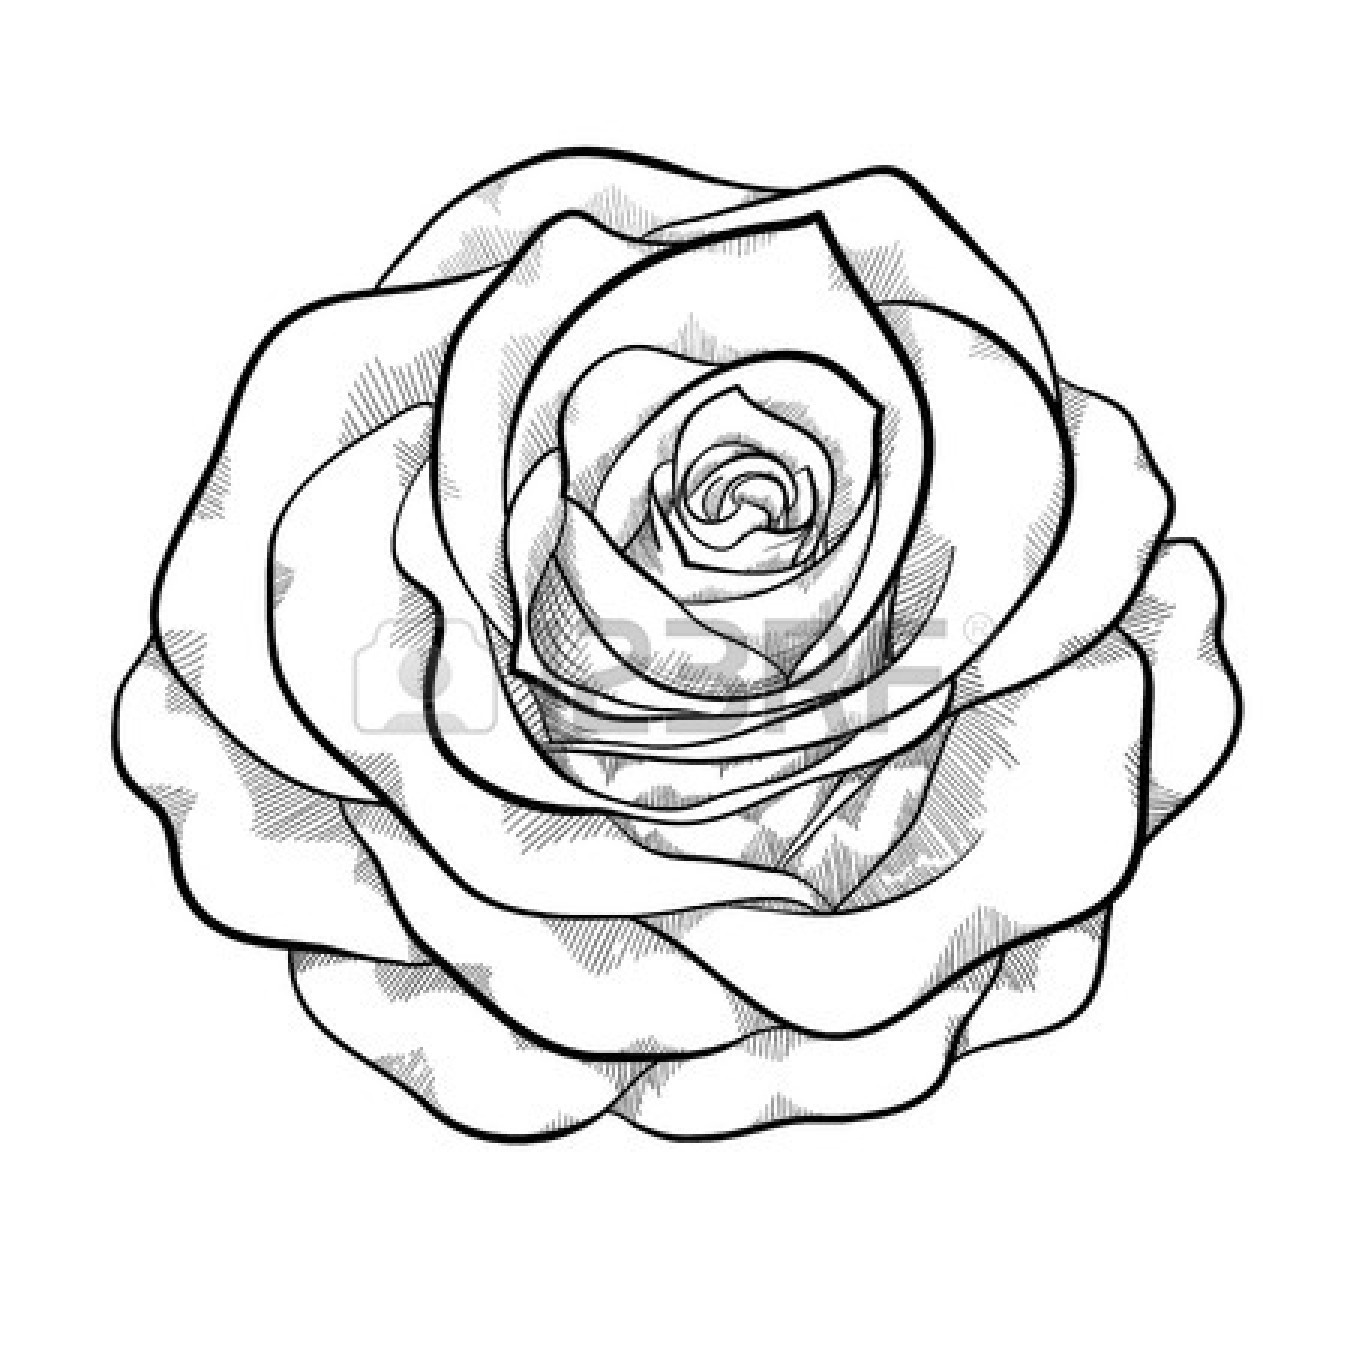 Drawing Of A Rose Free download best Drawing Of A Rose on